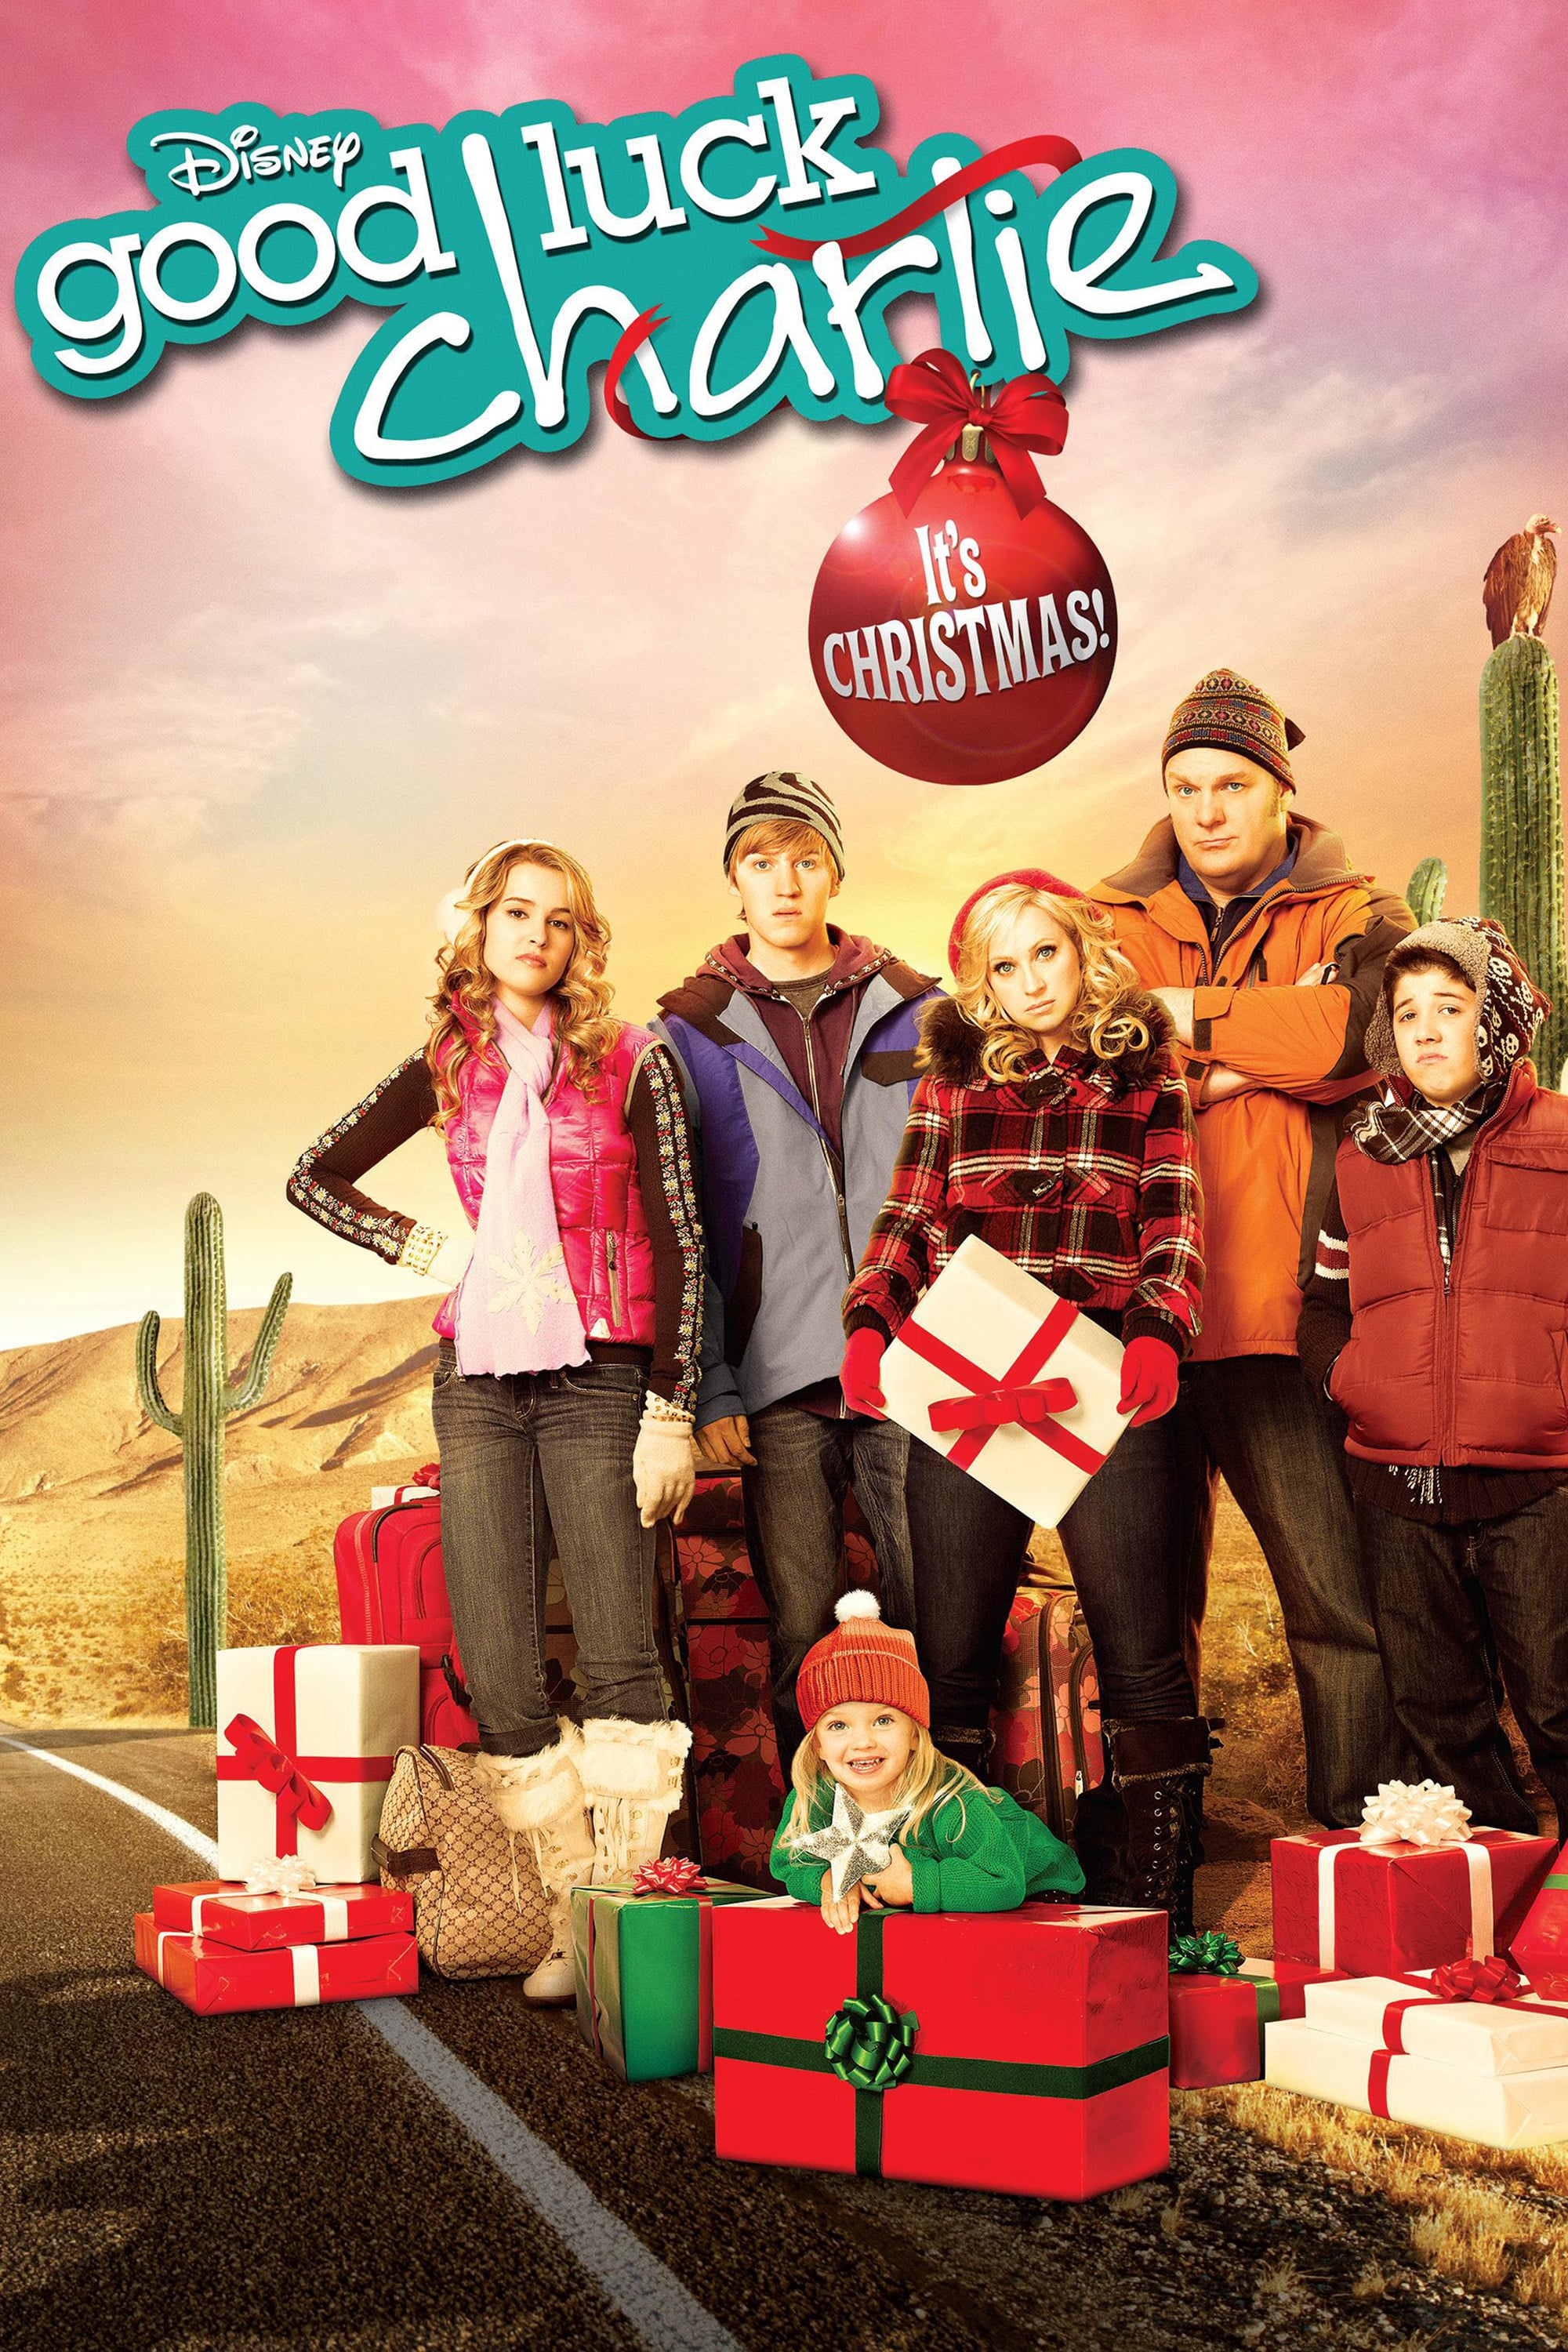 Good Luck Charlie: It's Christmas!, 2011